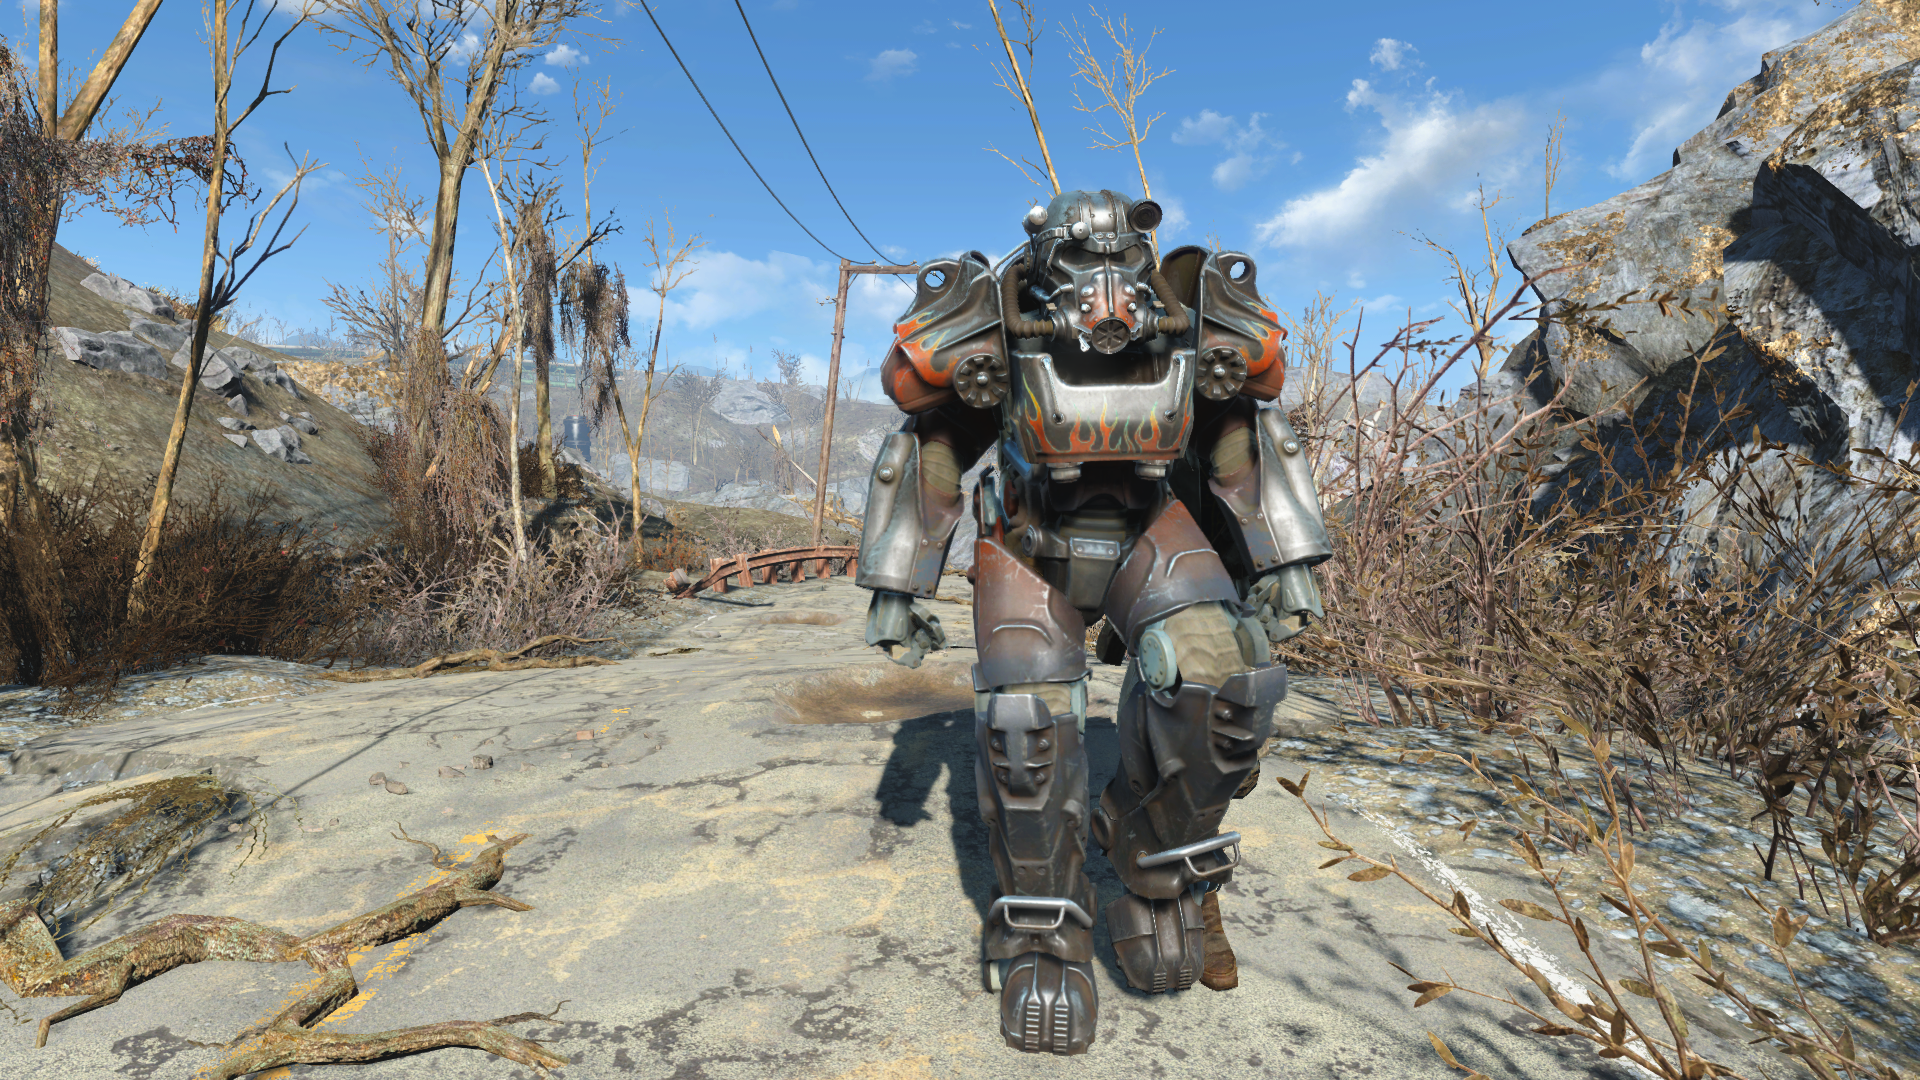 The only way to explore the wastelands!